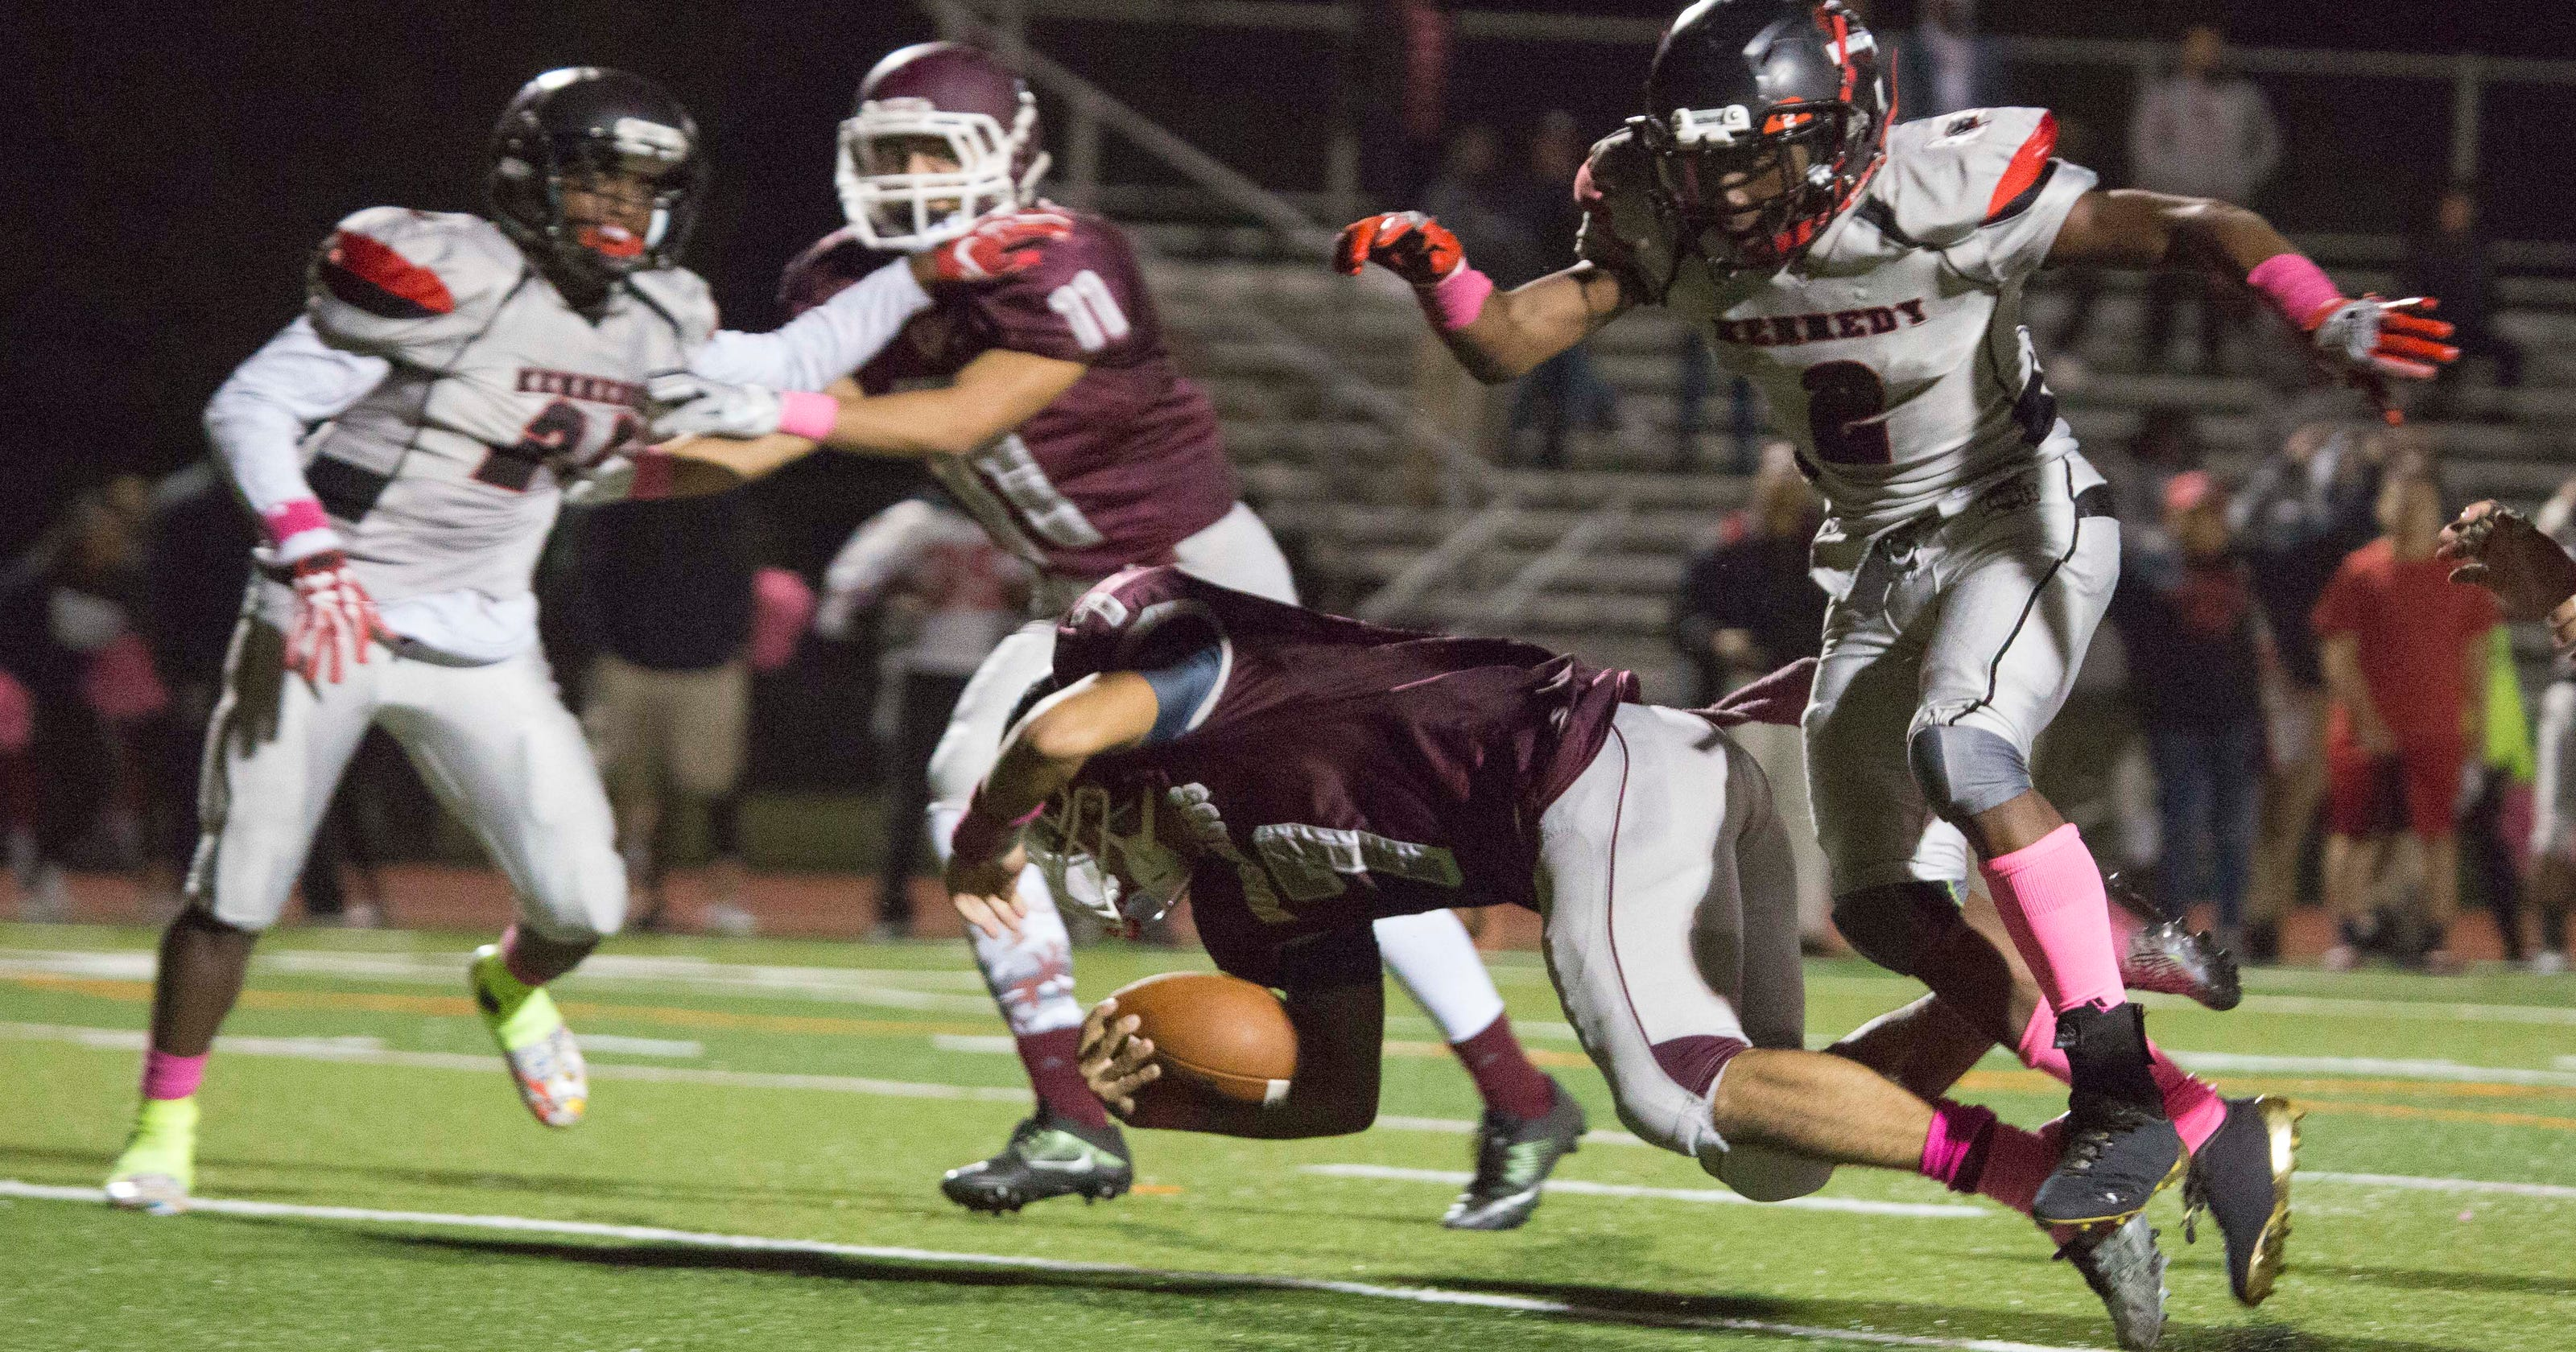 North Jersey football: Clifton, Northern Highlands to meet